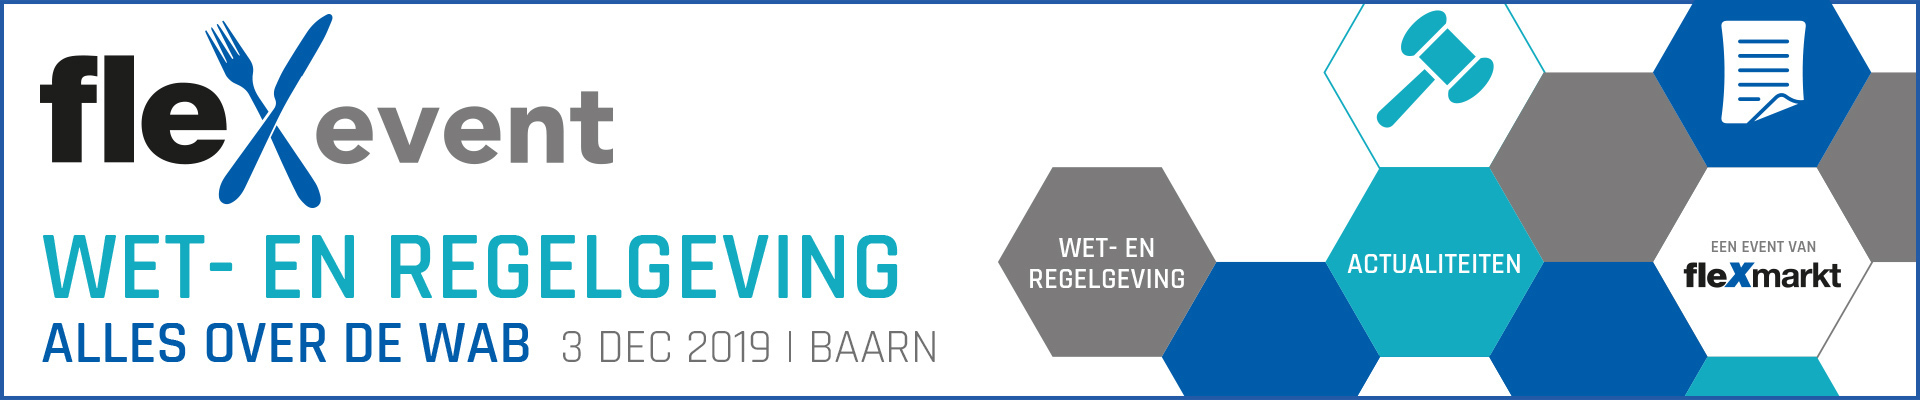 Flexevent wet- en regelgeving 2019